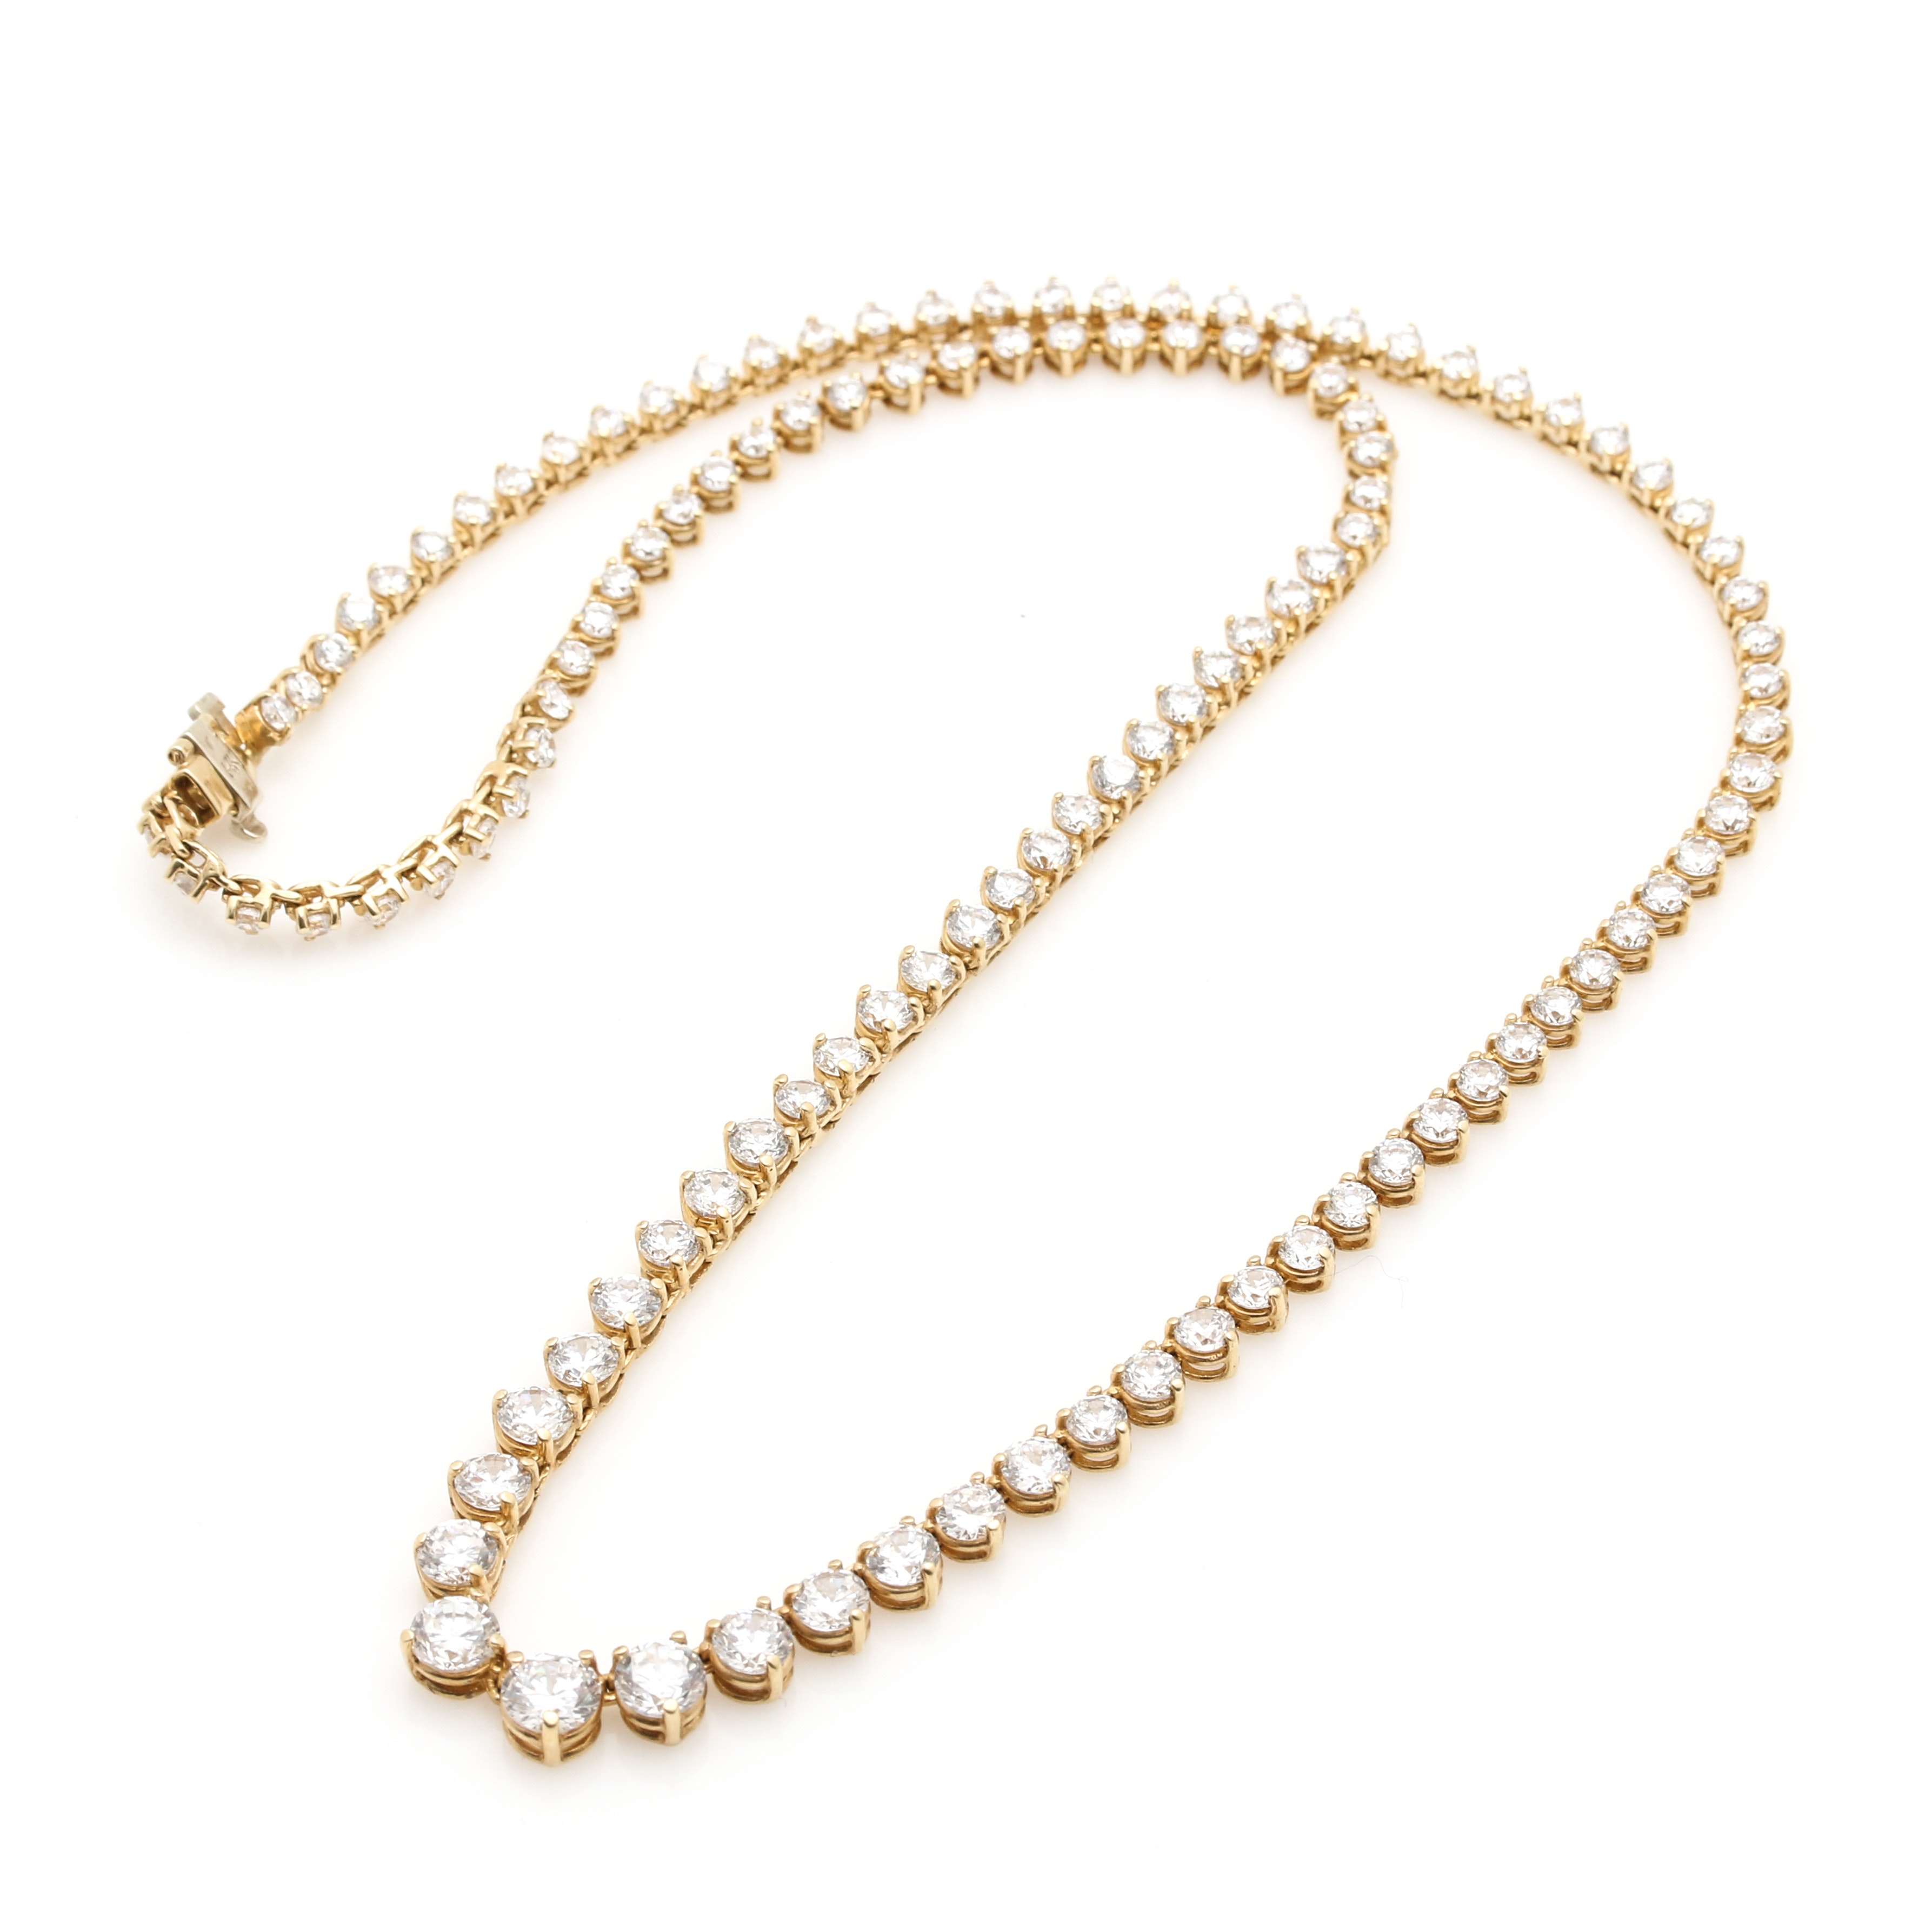 14K Yellow Gold Cubic Zirconia Graduated Necklace